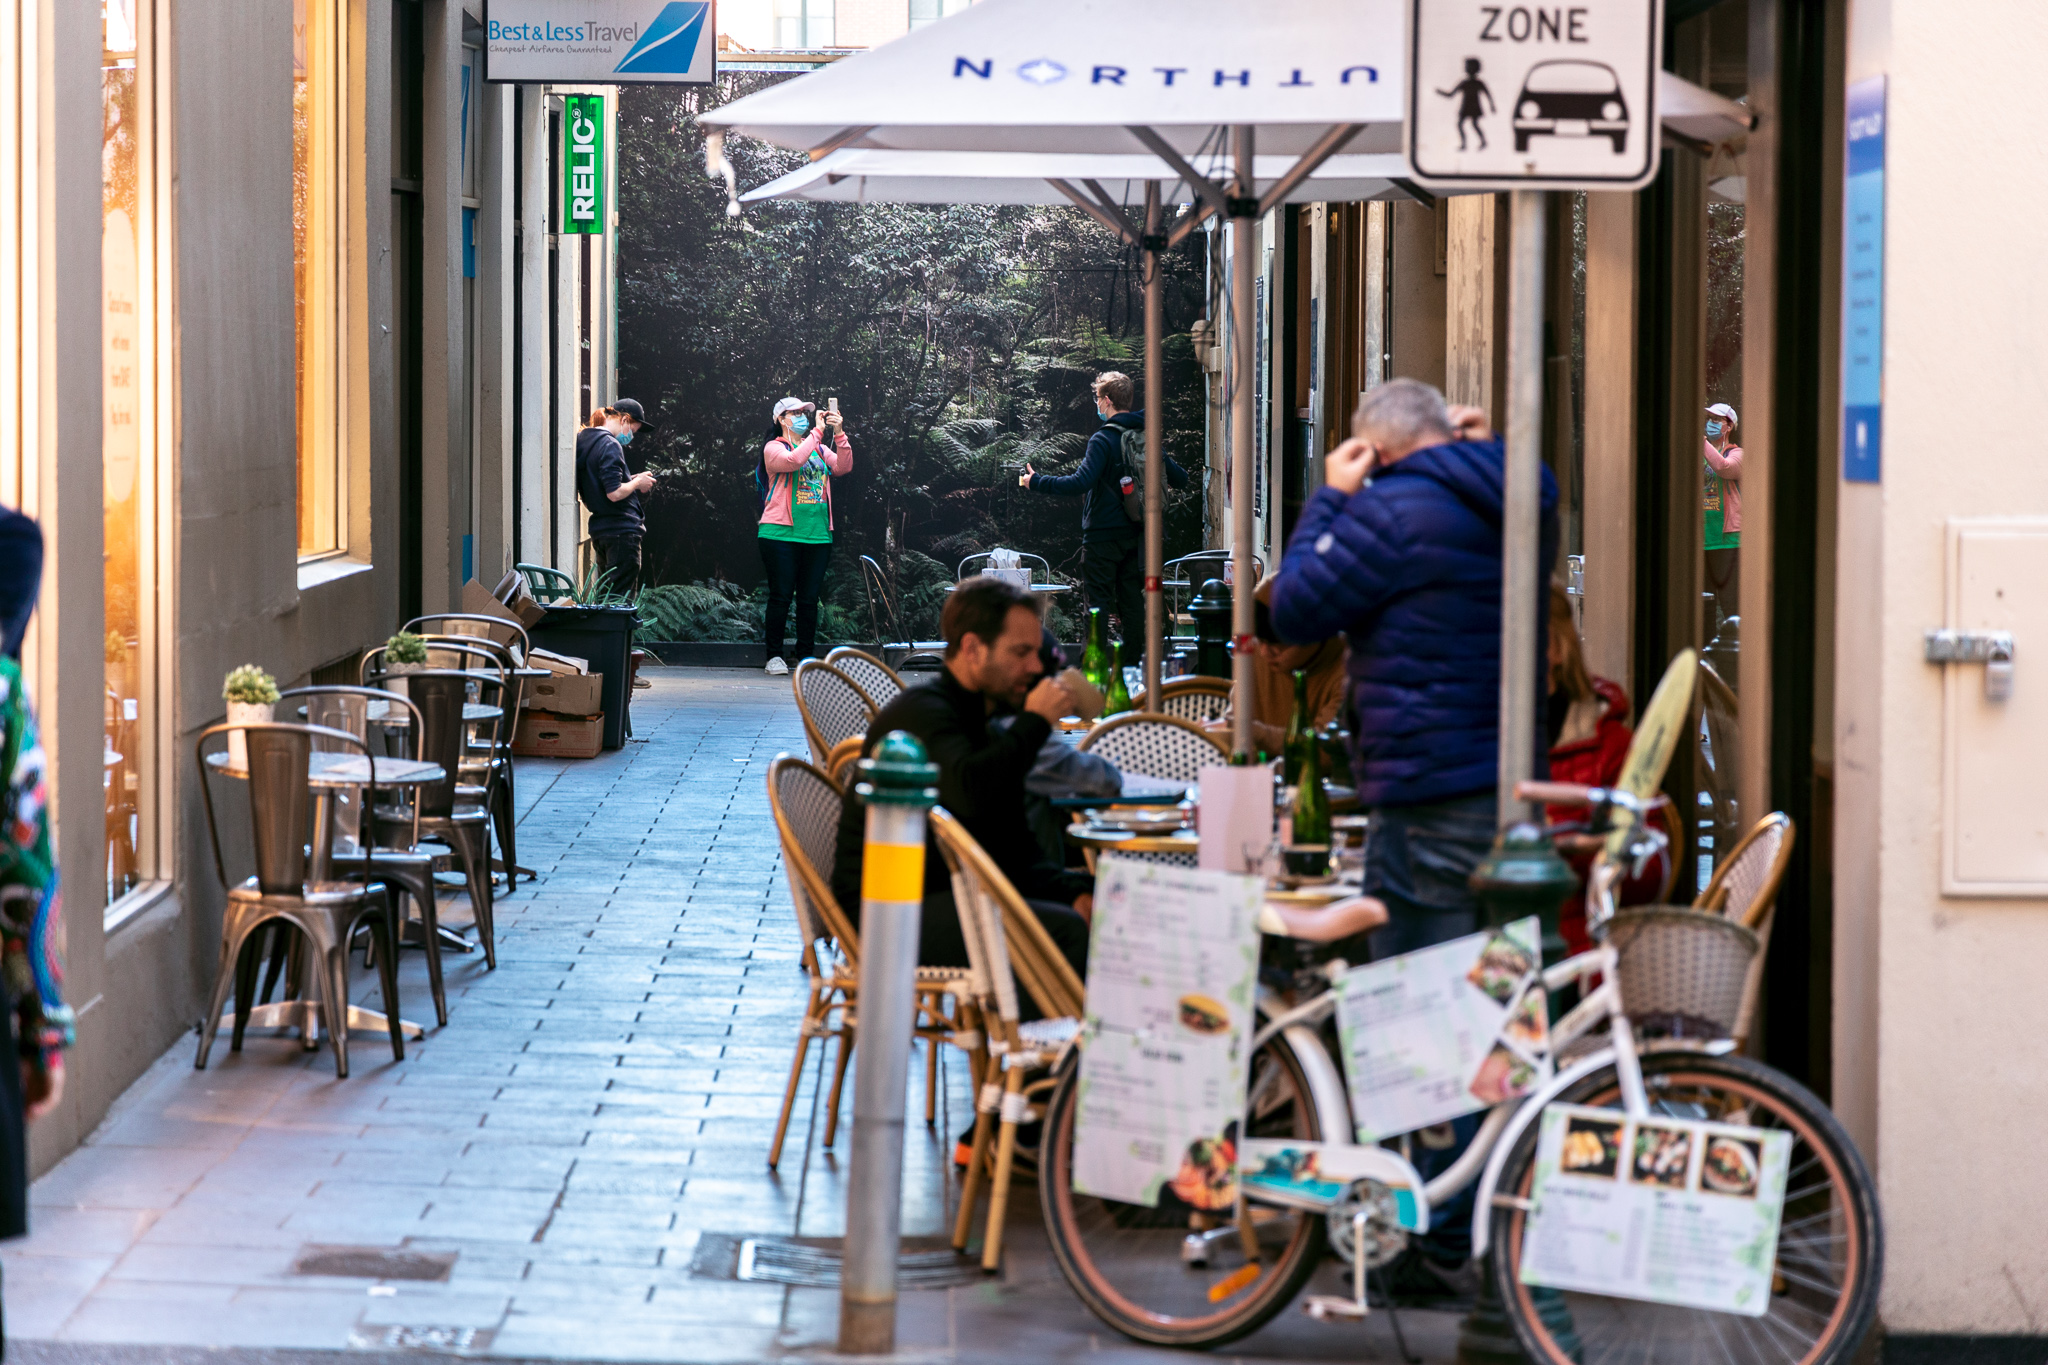 People dine in a laneway in front of an artwork